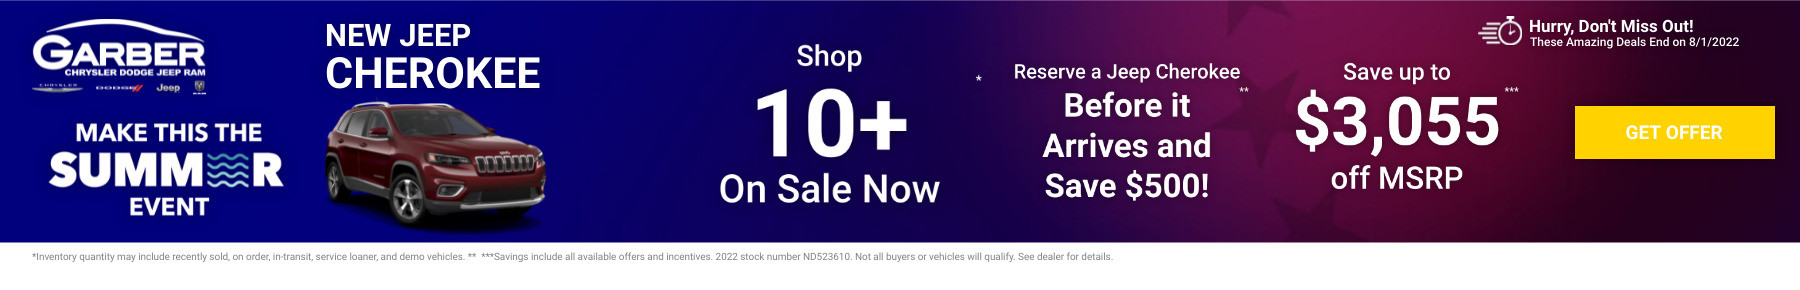 New Jeep Cherokee Current Deals and Offers in Saginaw, MI